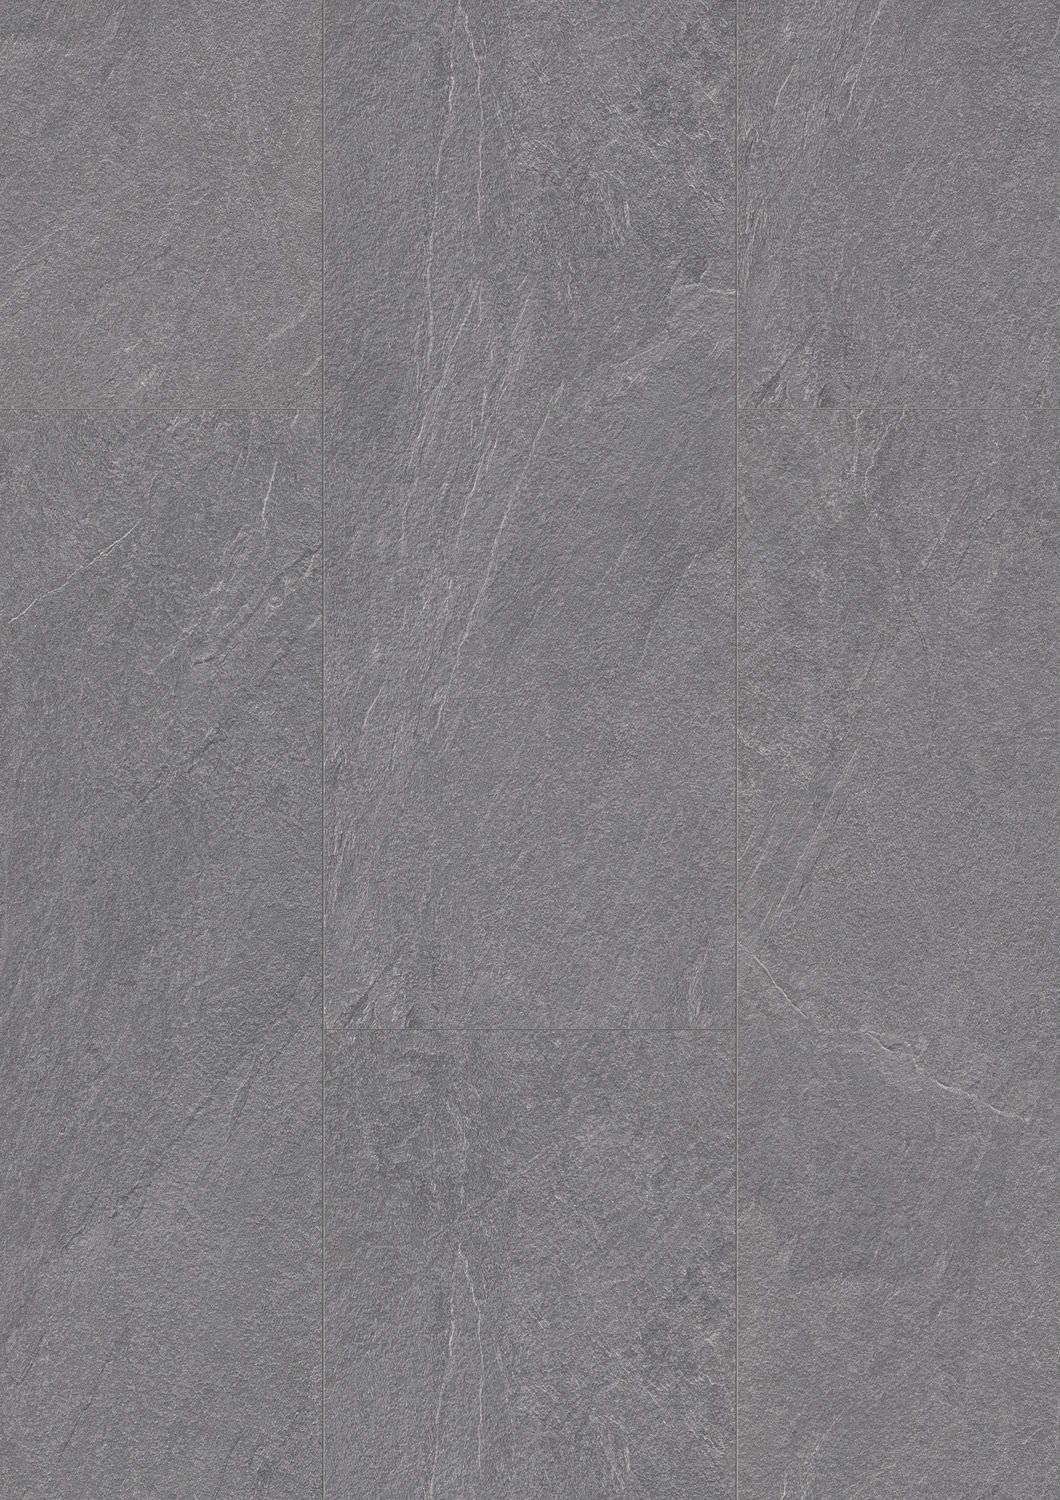 Hdf laminate flooring click fit stone look tile look light hdf laminate flooring click fit stone look tile look light grey slate l0120 01780 dailygadgetfo Images